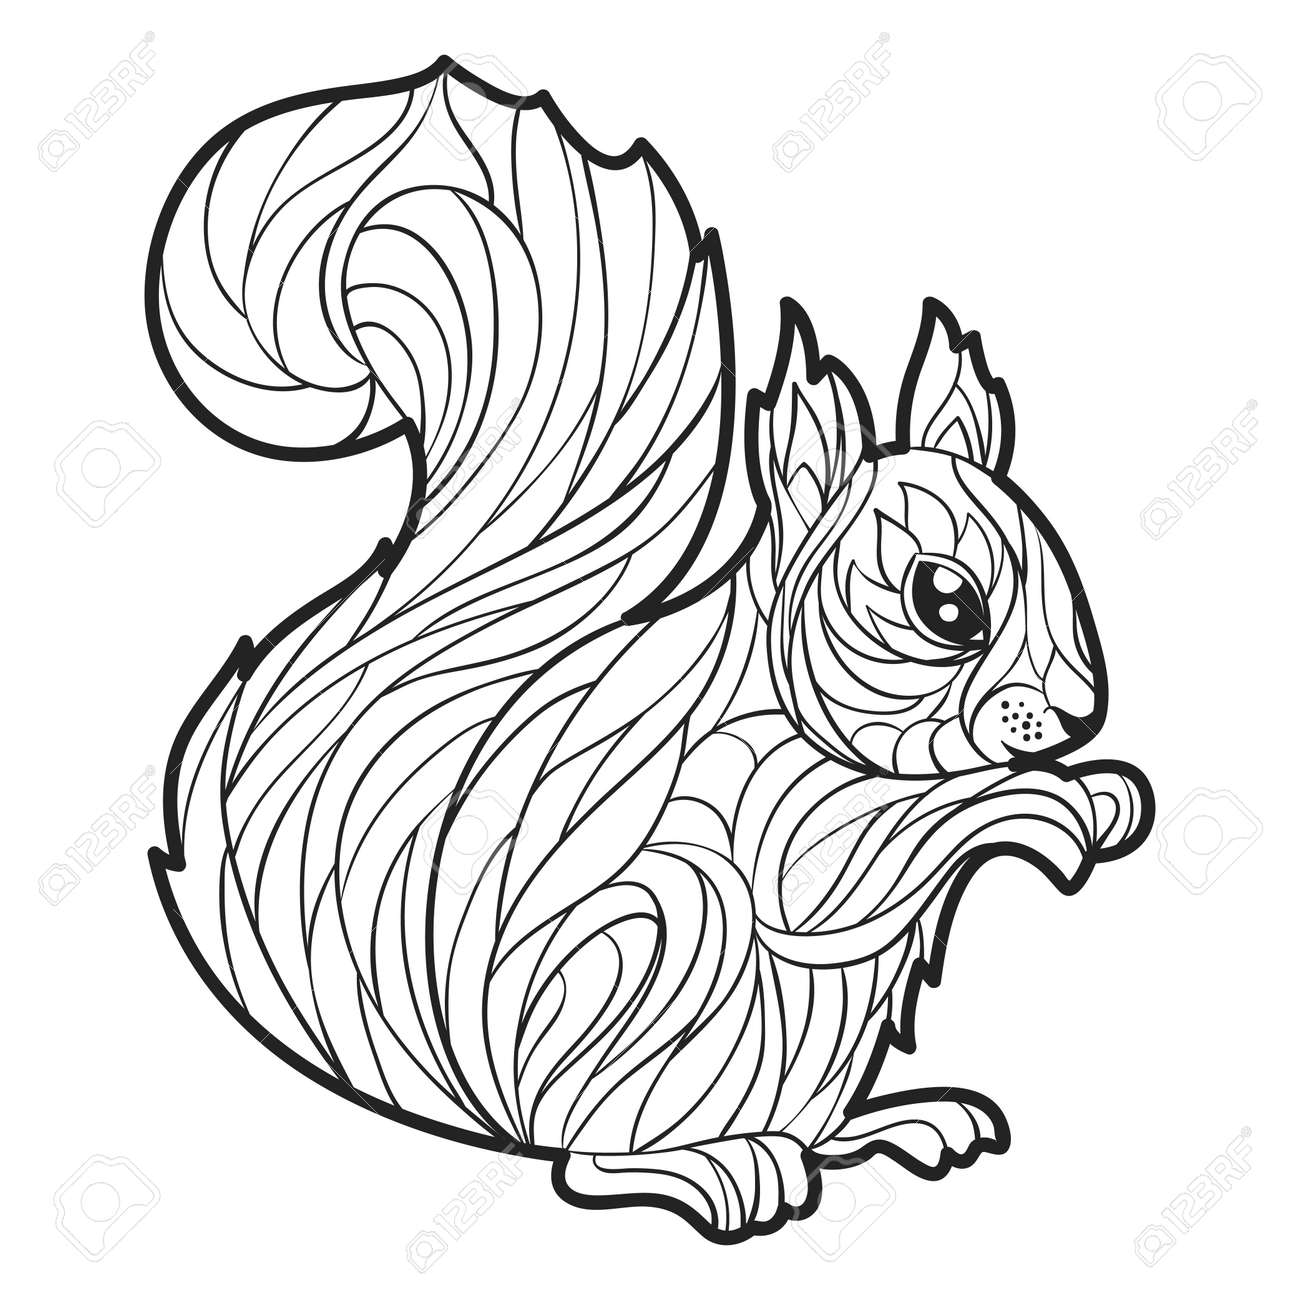 Vector Monochrome Hand Drawn Illustration Of Squirrel. Coloring ...